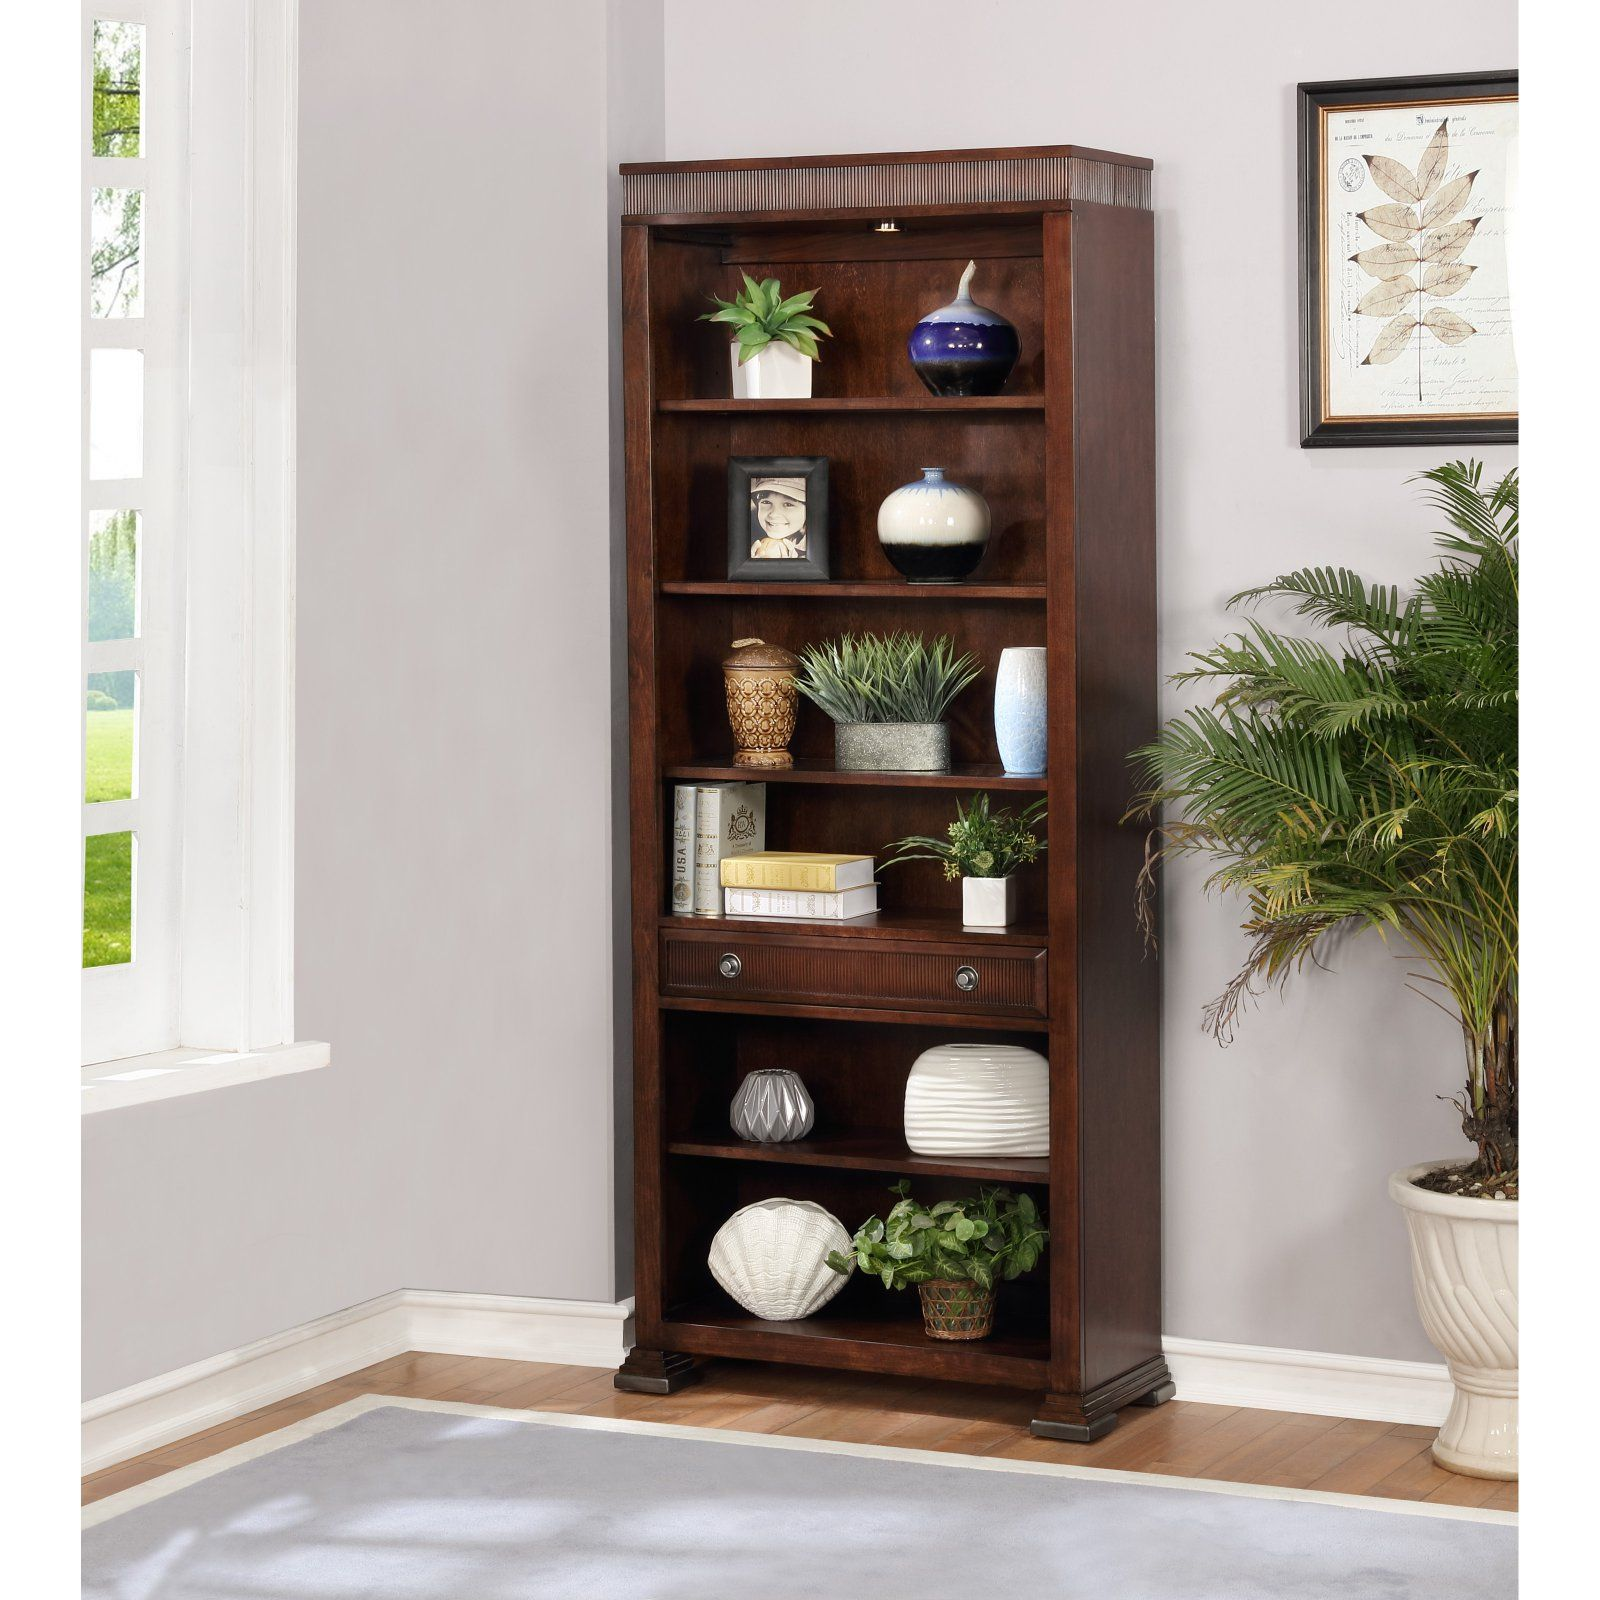 Turnkey Products Highland Park Bookcase